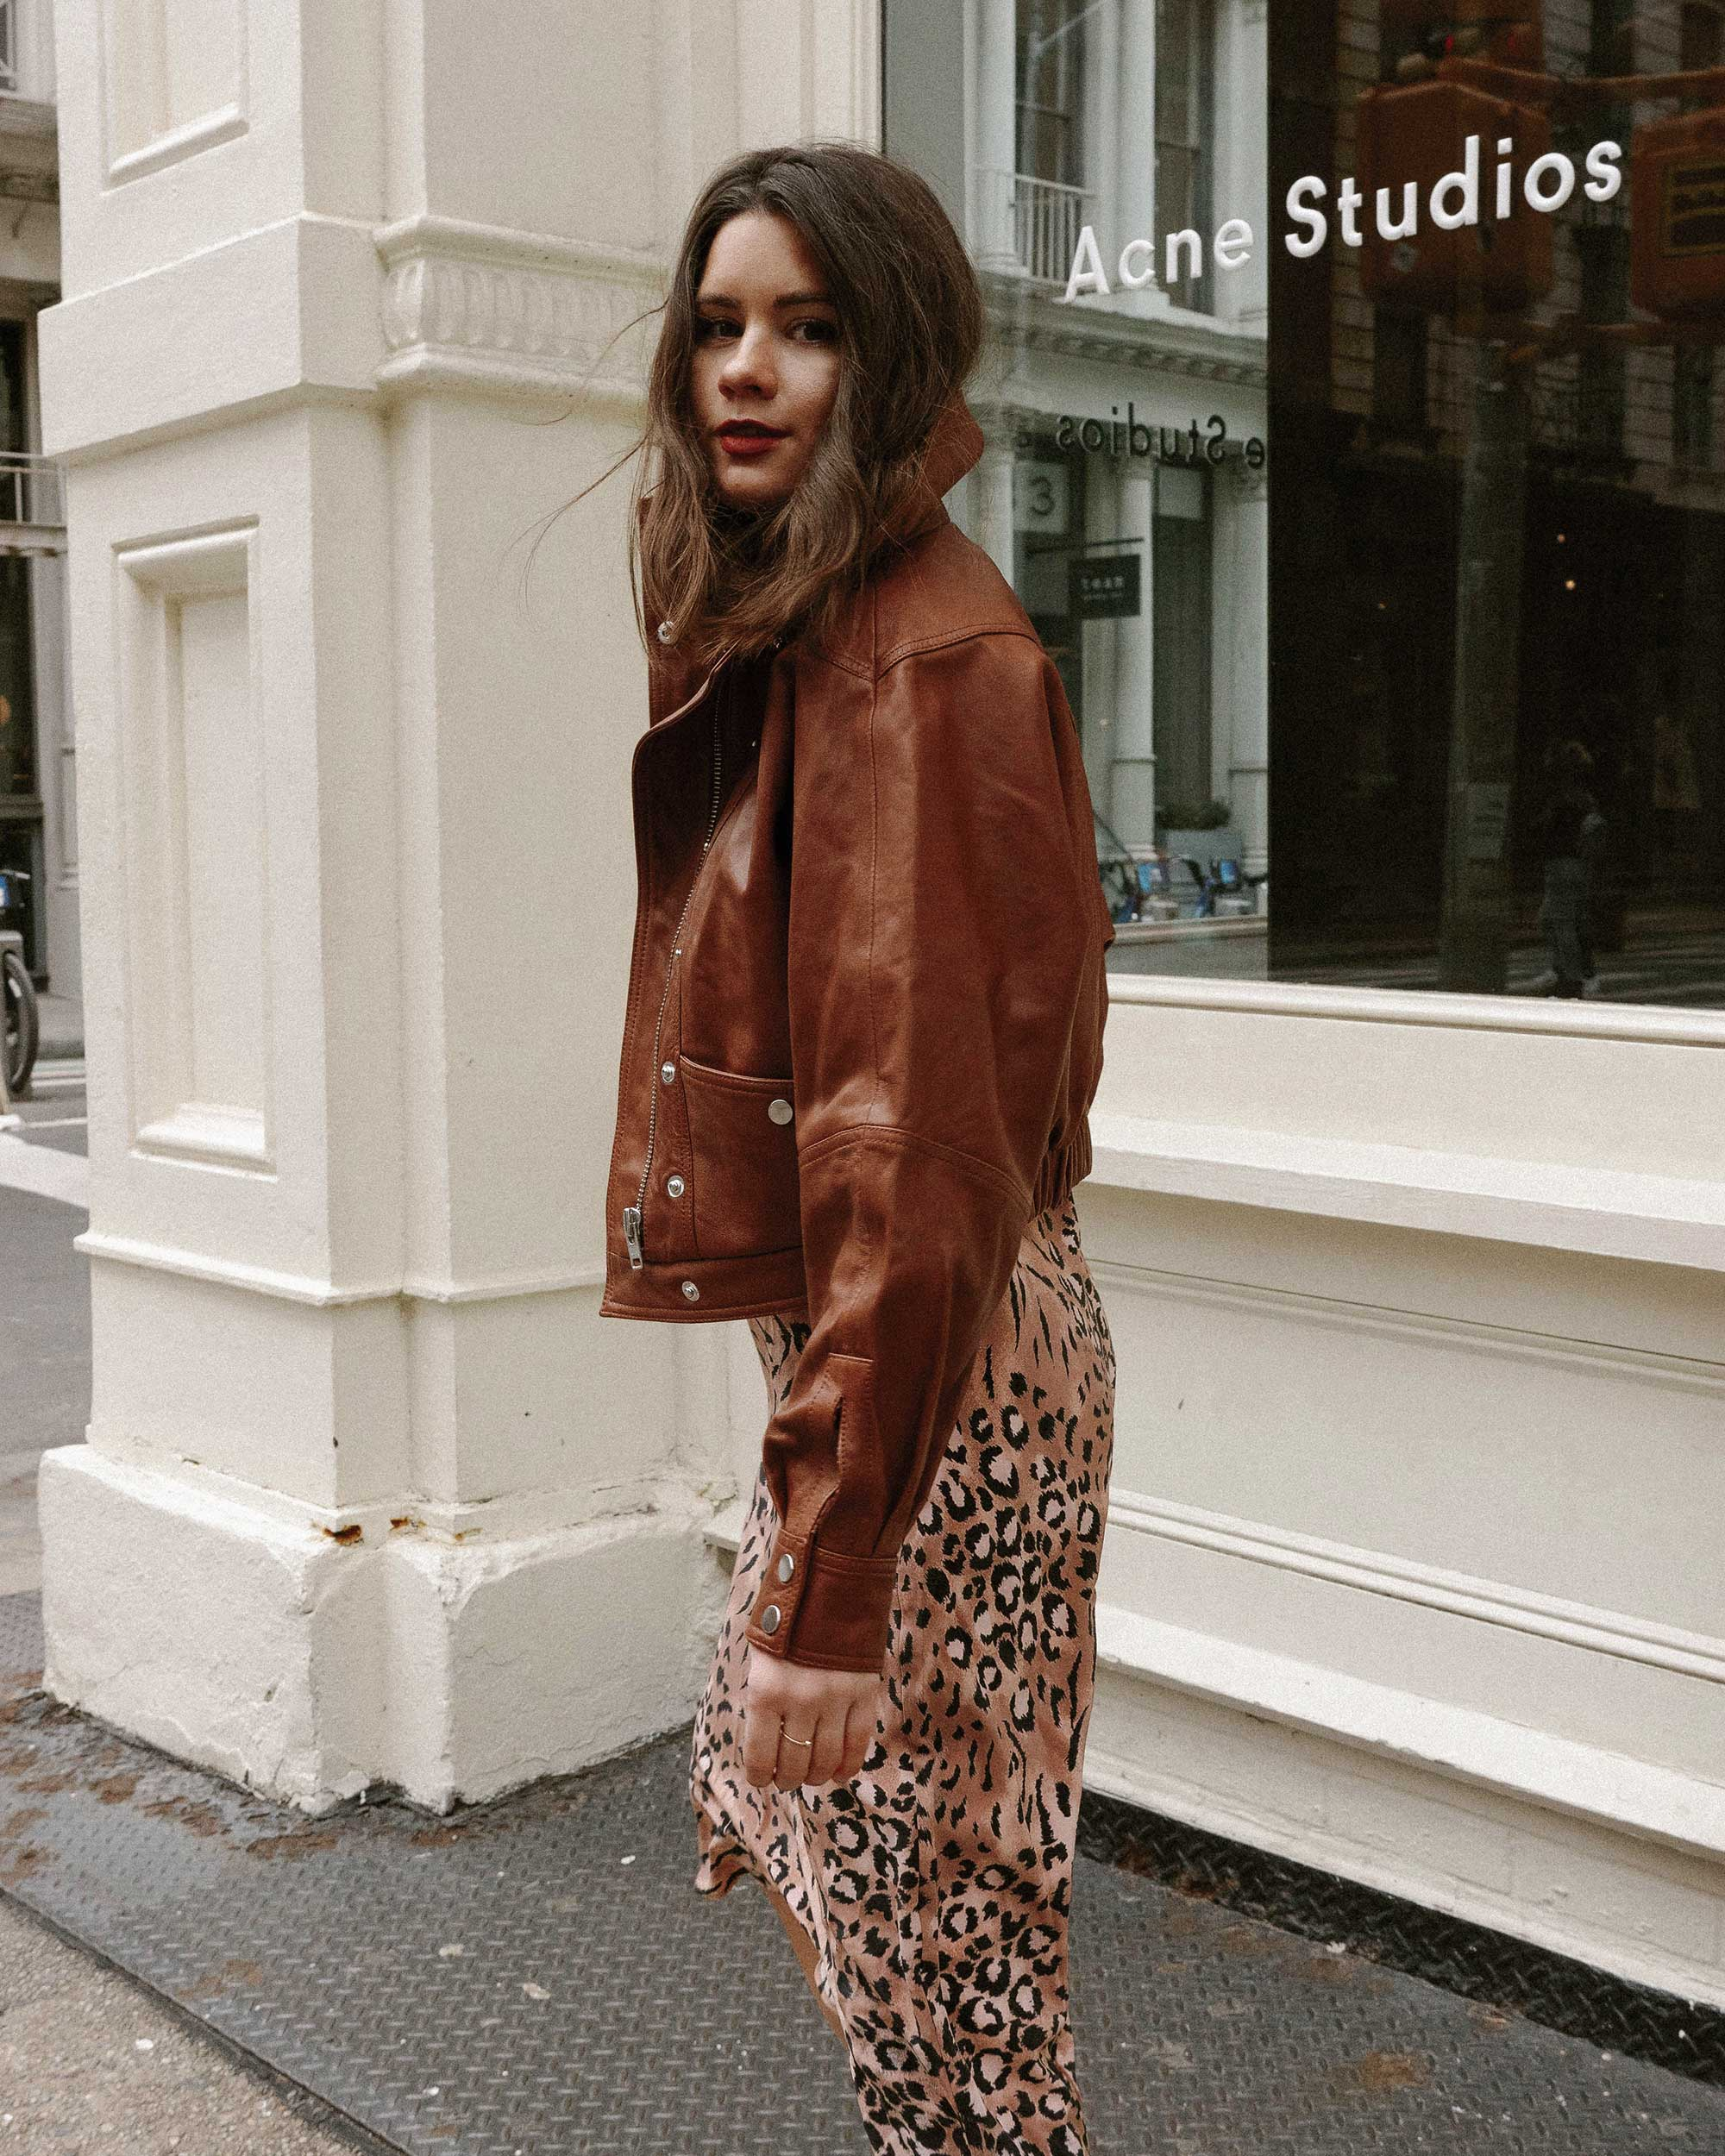 Sarah Butler of Sarah Styles Seattle wears PAIGE Cicely animal print slip dress and Revolve LPA oversized brown leather bomber jacket in Soho, New York | @sarahchristine, Seattle Blogger4.jpg